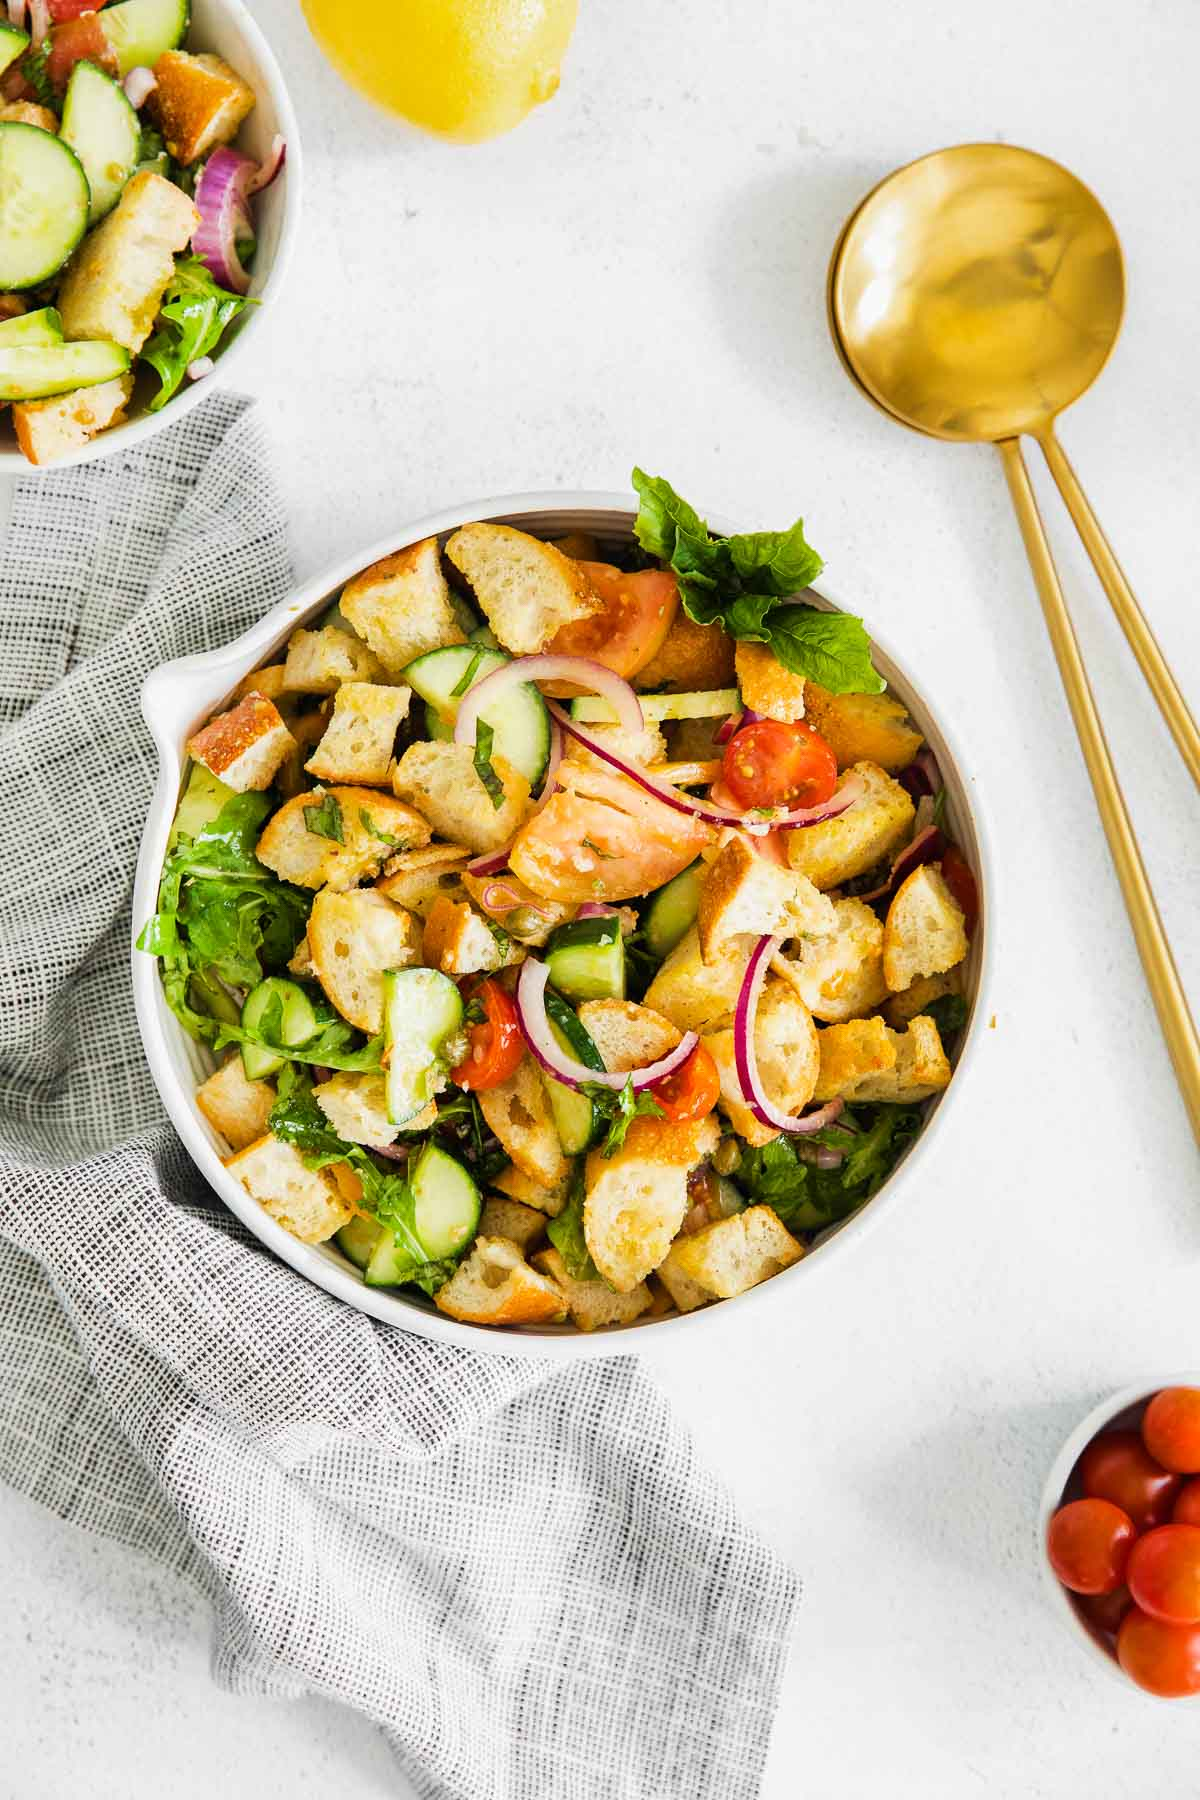 classic panzanella salad with bread cubes in a white bowl